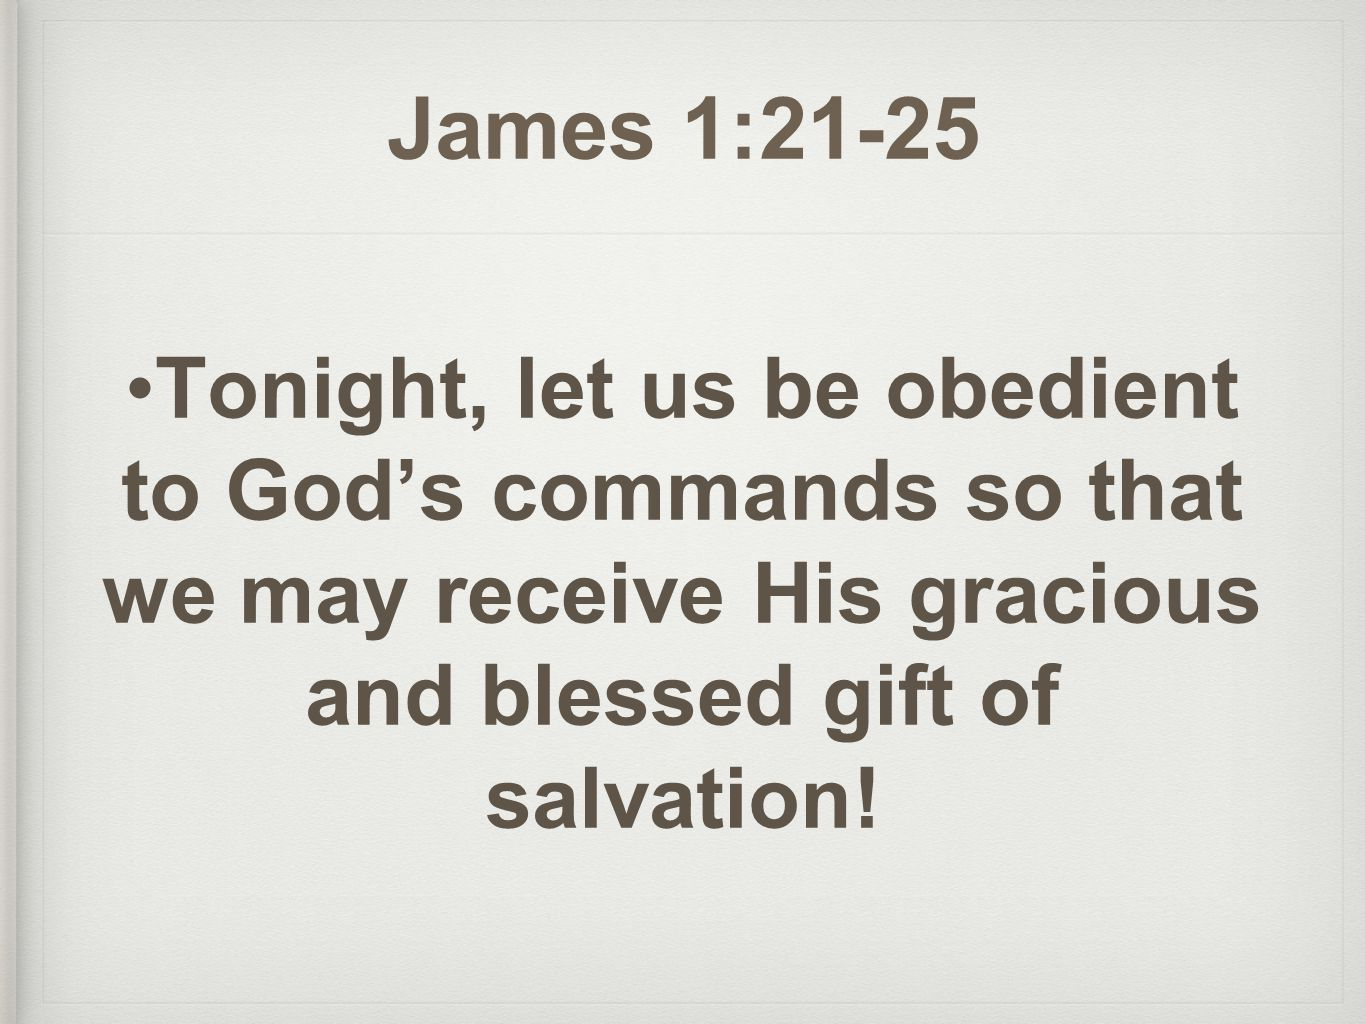 Tonight, let us be obedient to God's commands so that we may receive His gracious and blessed gift of salvation.